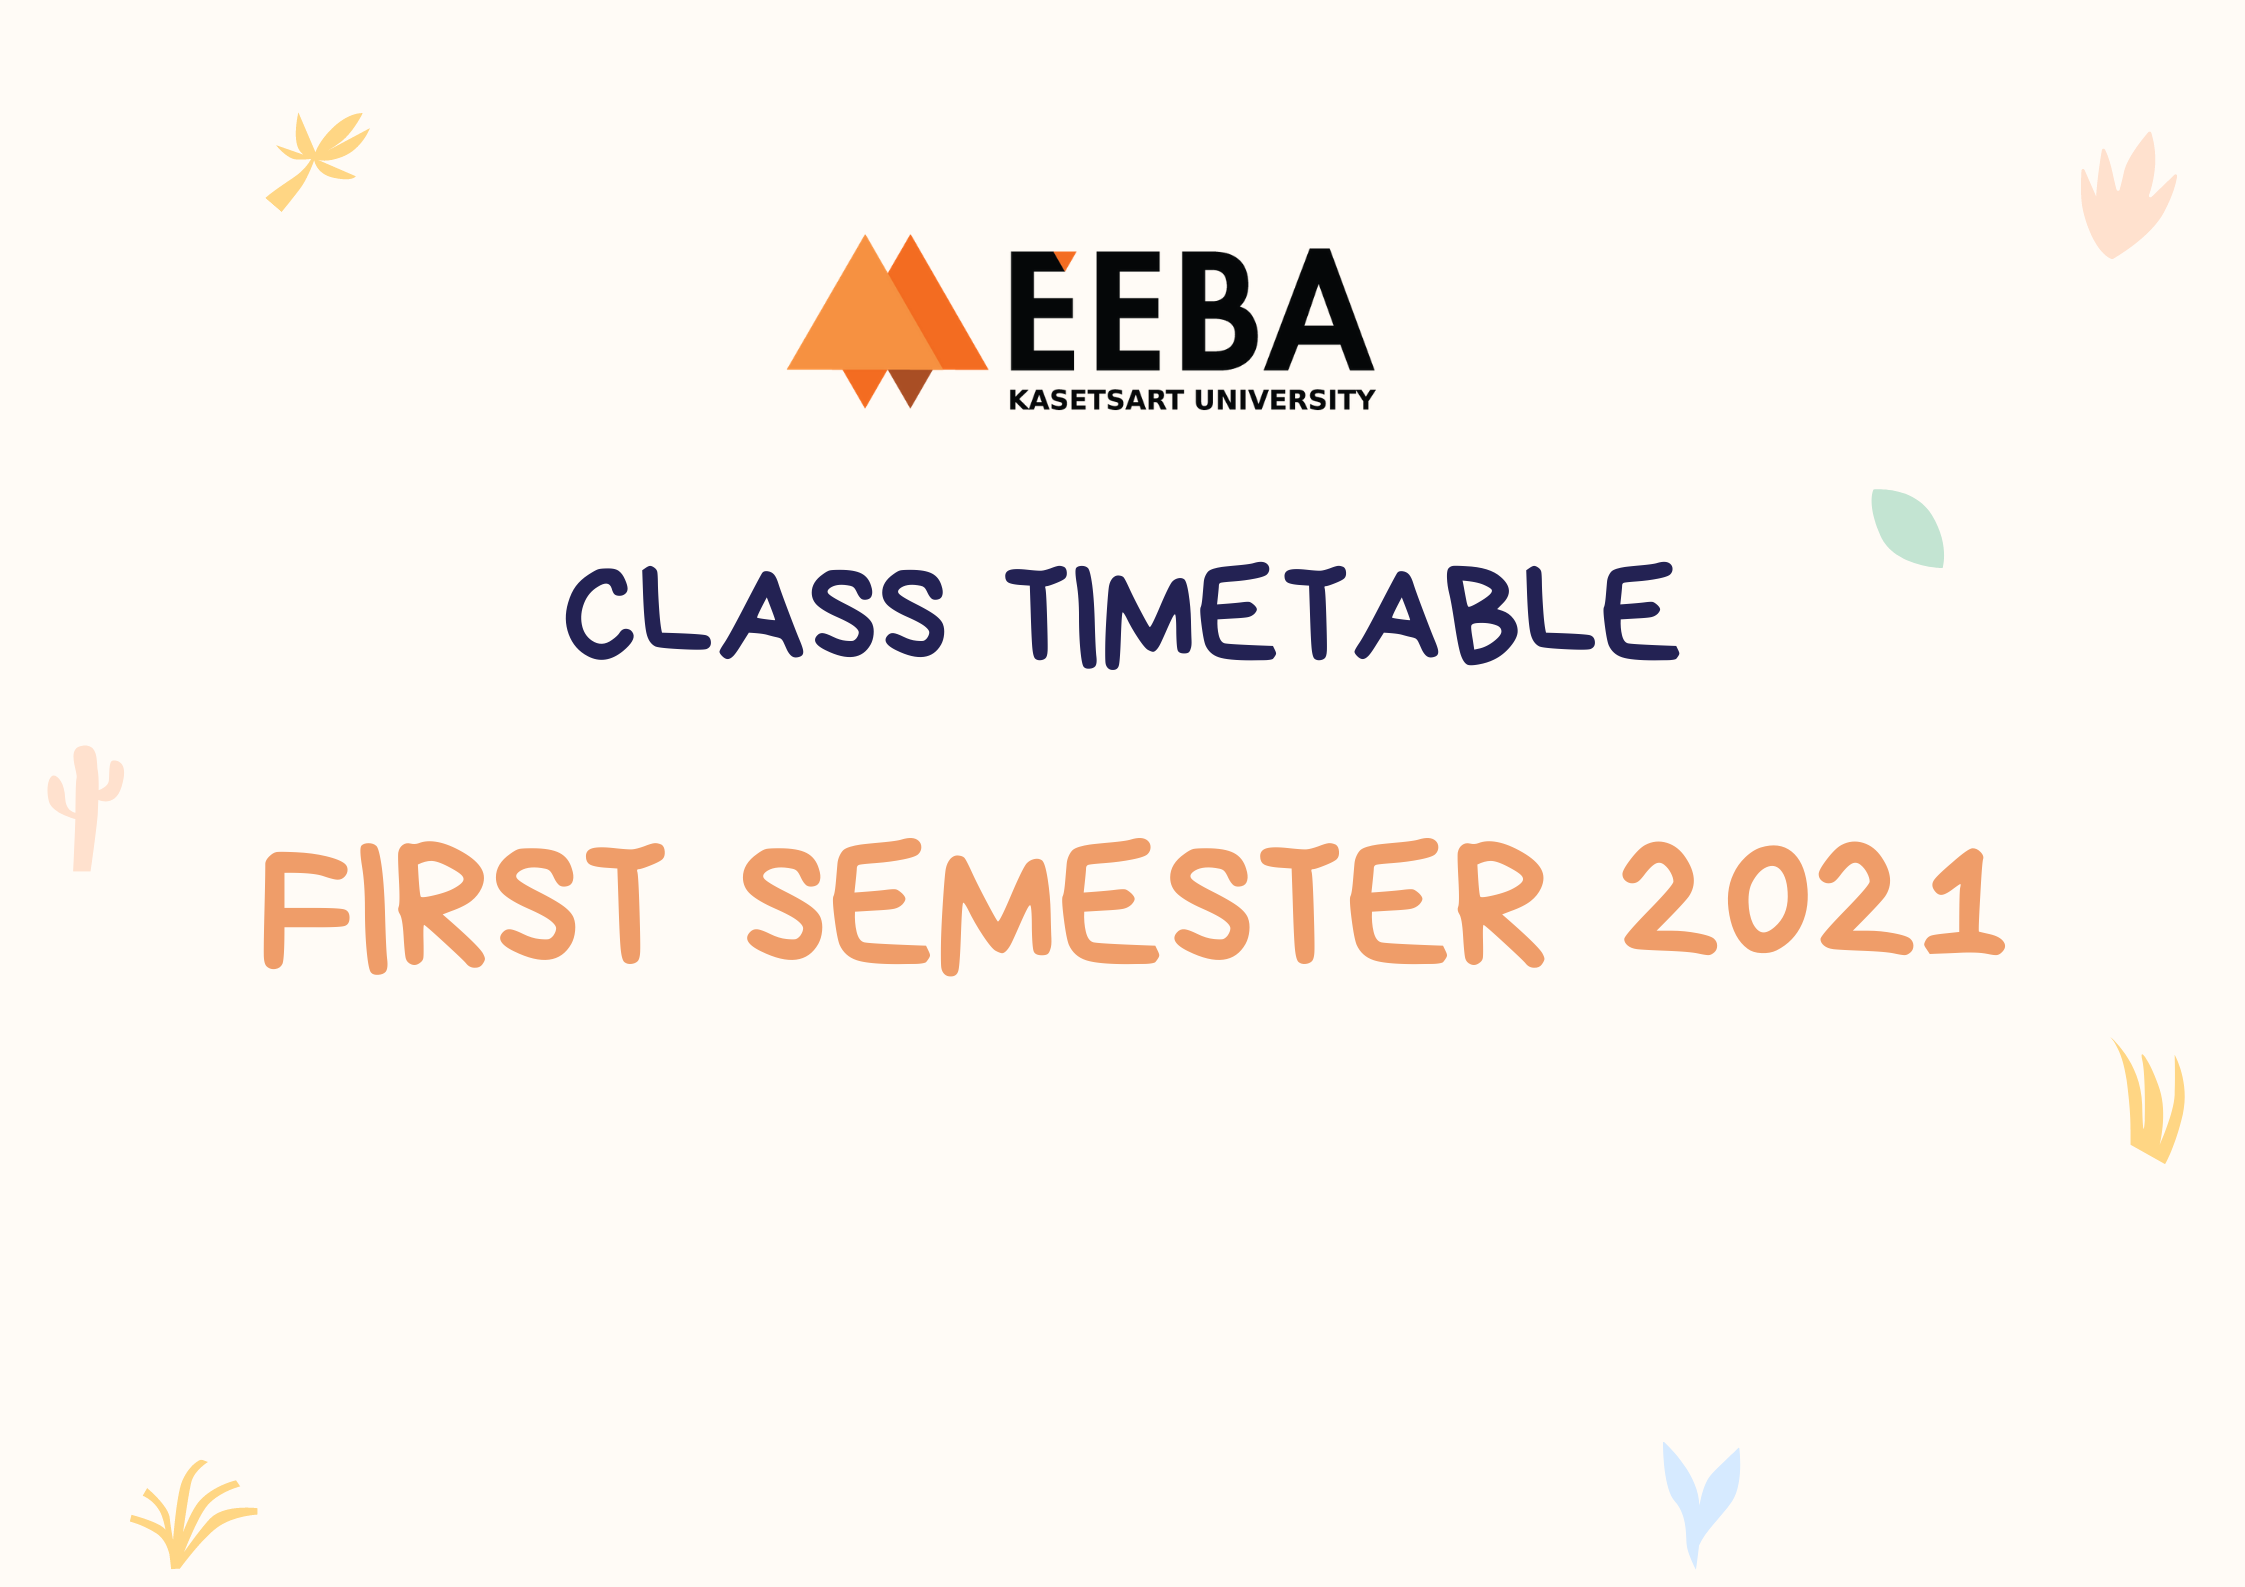 Class timetable for Semester 1, Academic Year 2021